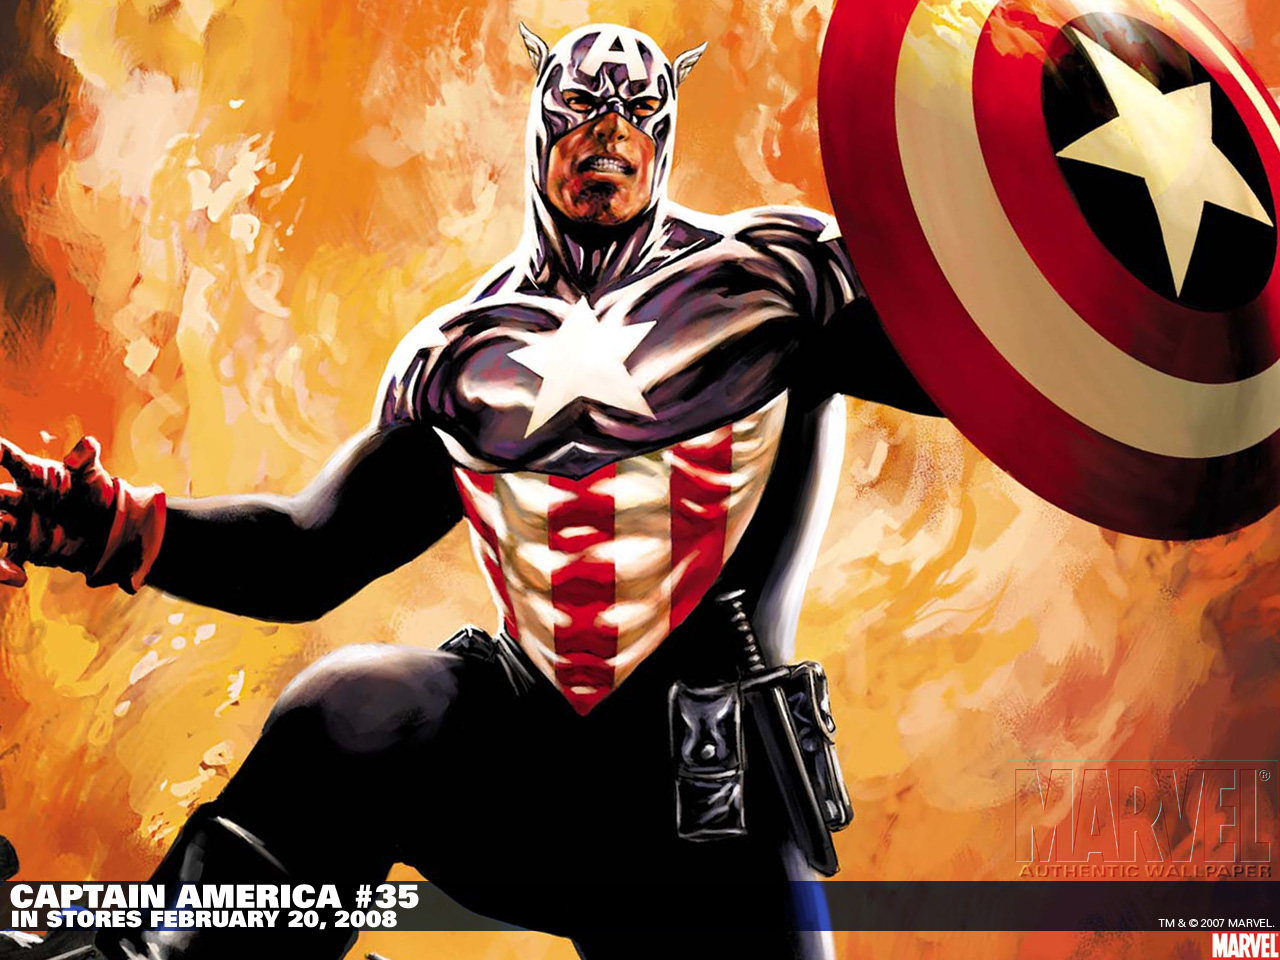 Captain America wallpapers Captain America background 1280x960